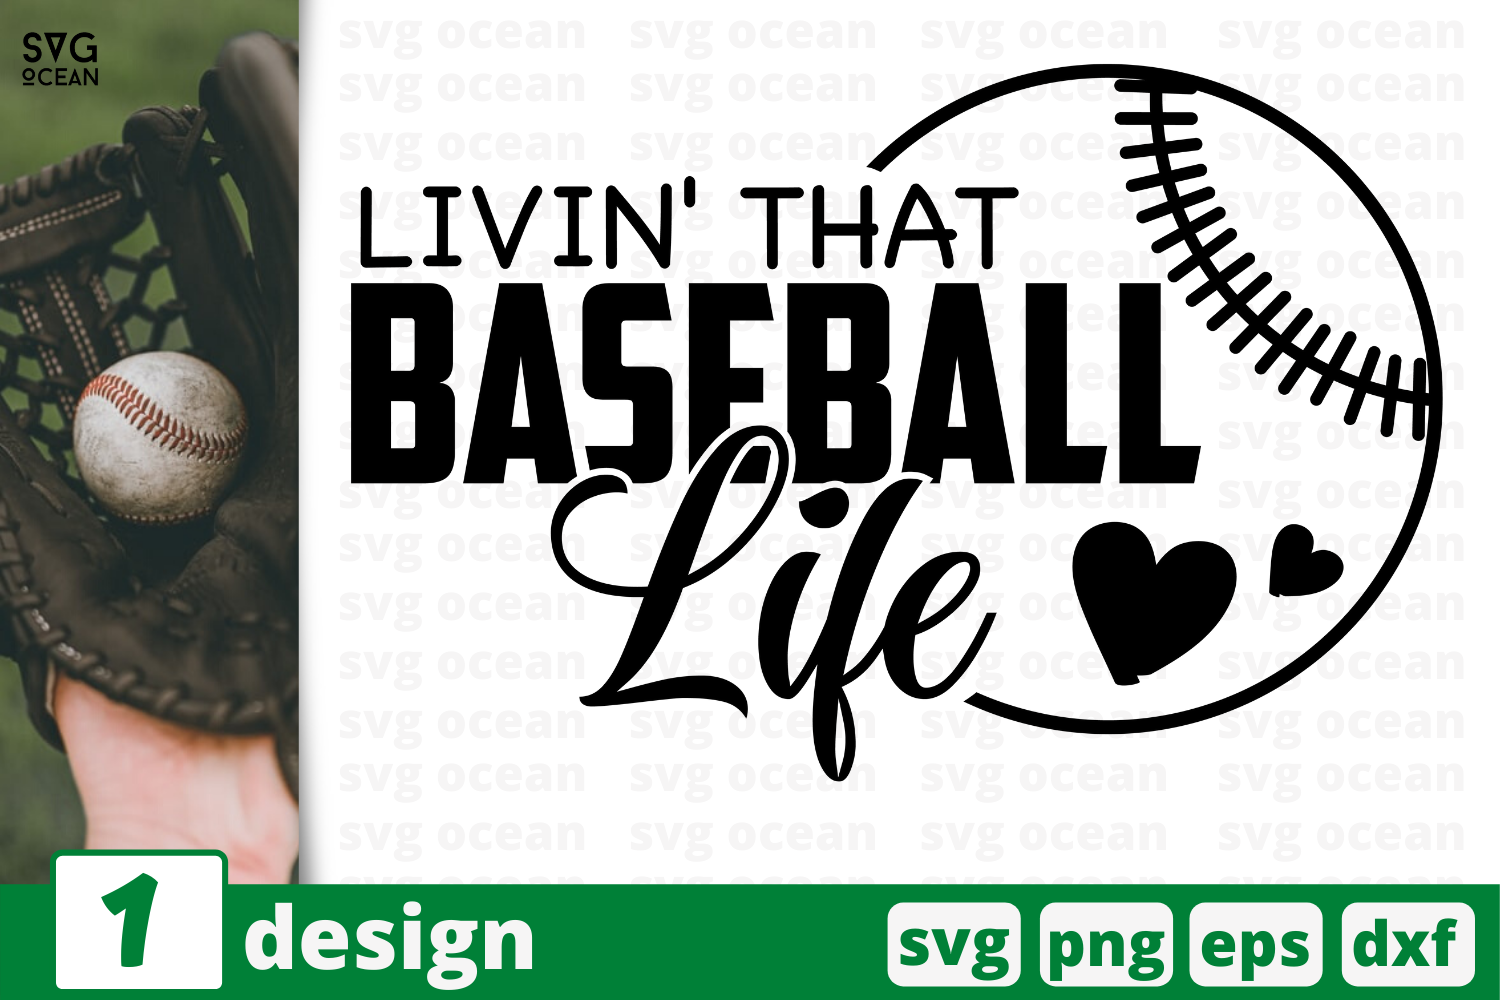 Download Free Livin That Baseball Life Graphic By Svgocean Creative Fabrica for Cricut Explore, Silhouette and other cutting machines.